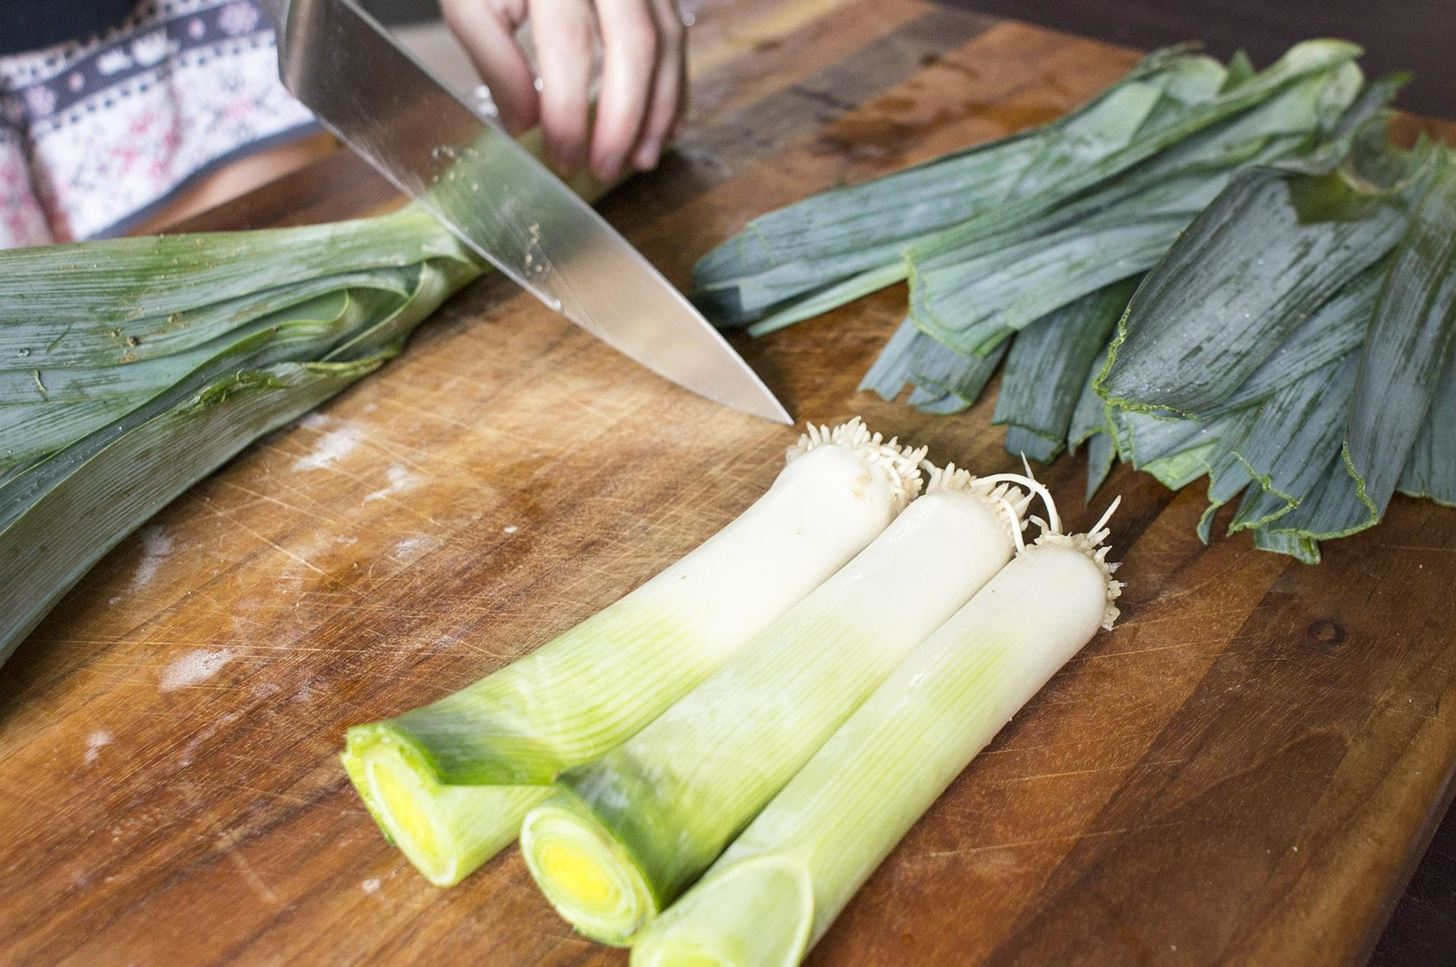 Save Time Prepping Veggies with These Insider Tricks